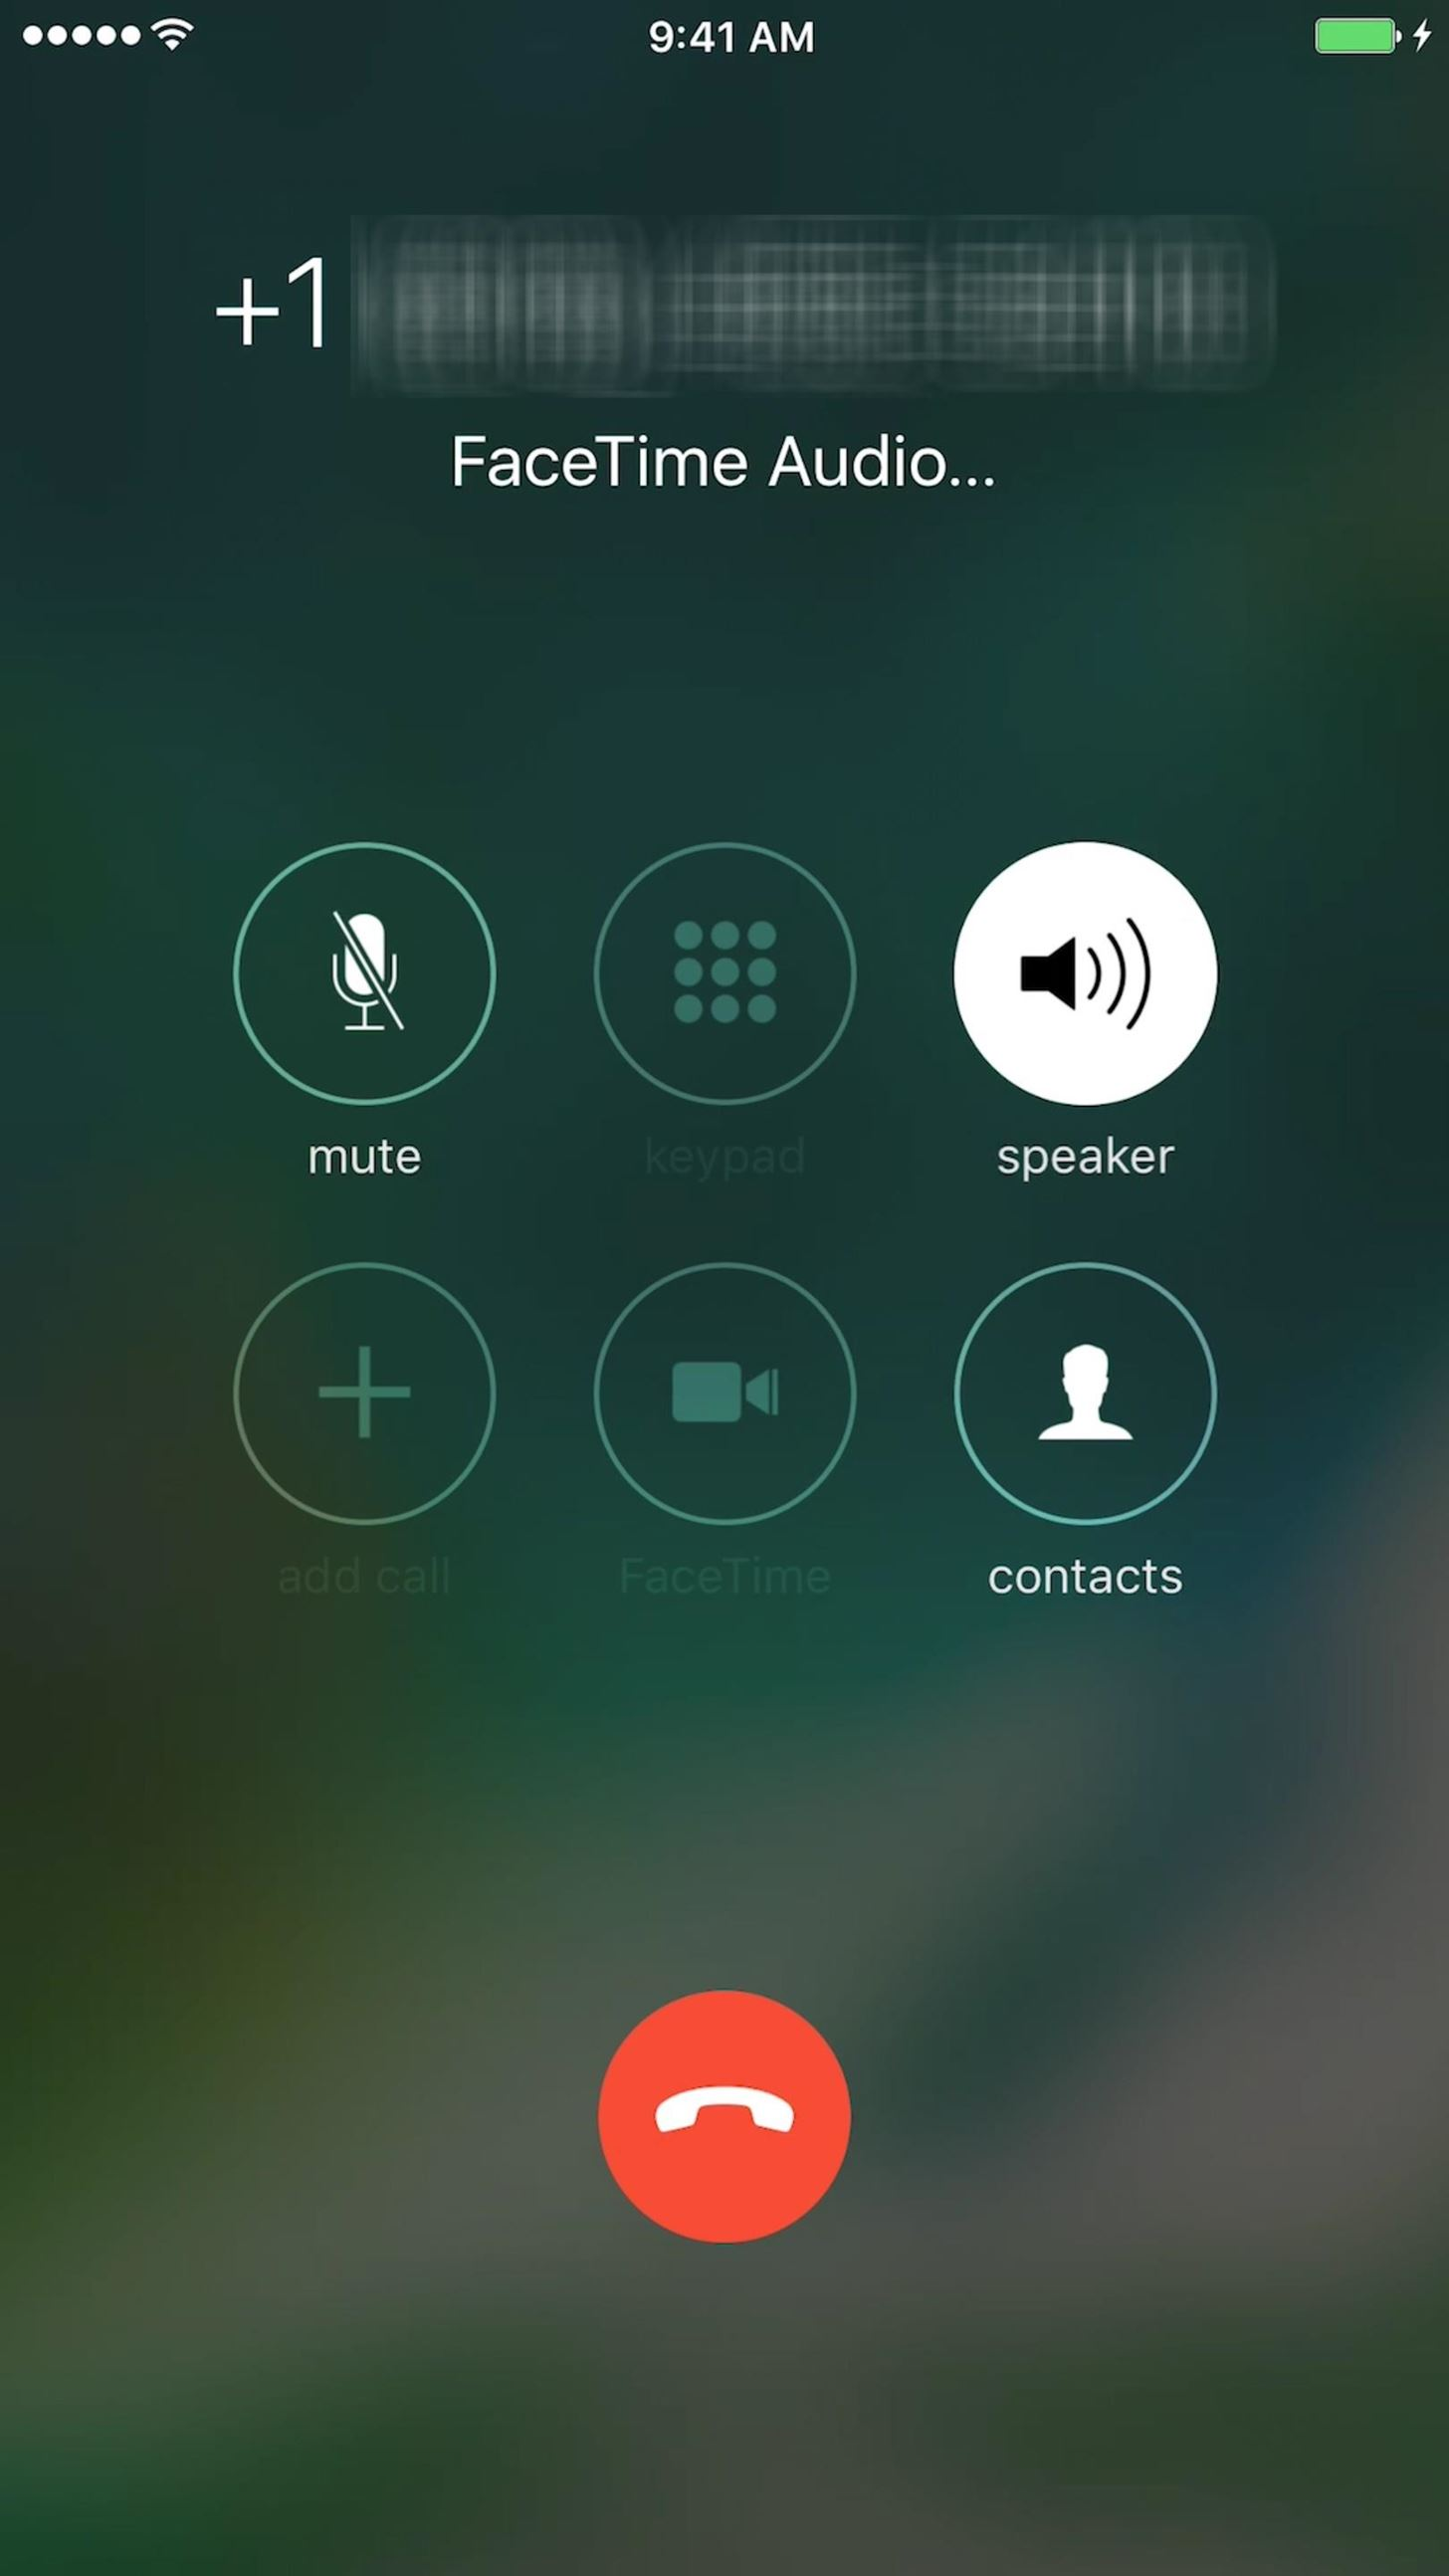 FaceTime 101: How to Turn Speakerphone On Automatically for FaceTime Audio Calls